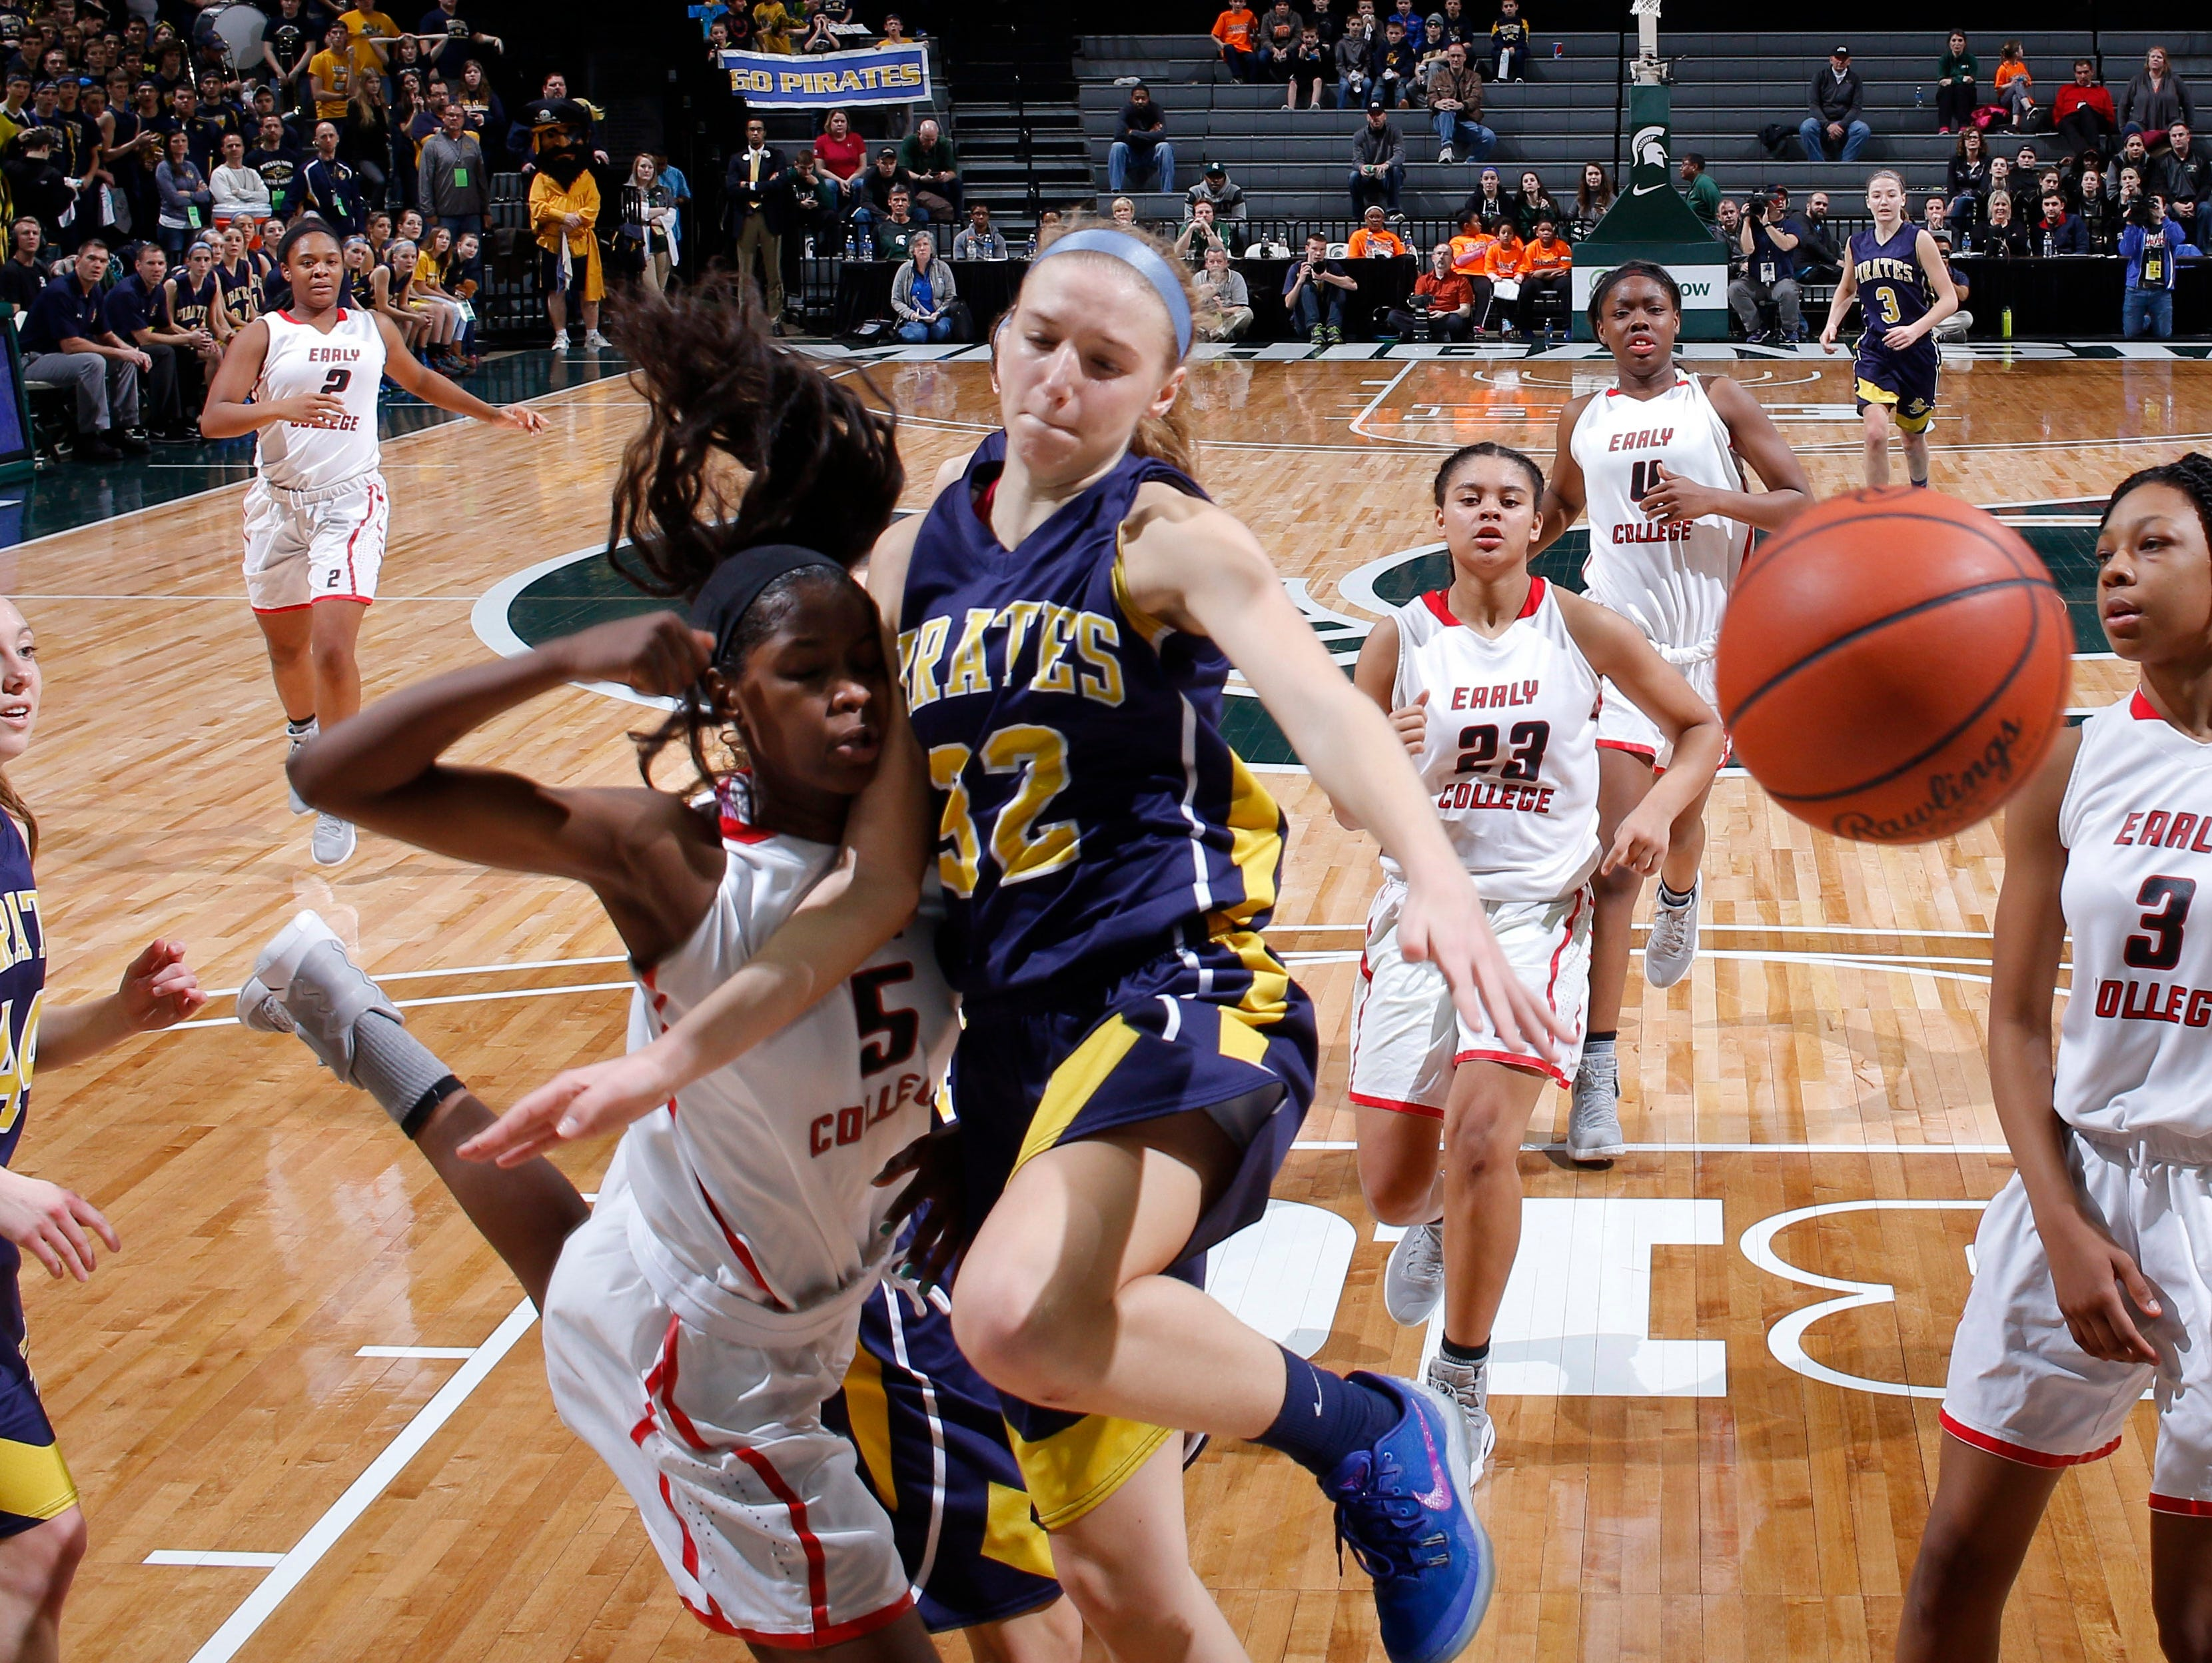 Pewamo-Westphalia's Emily Spitzley (32) and Detroit Edison's Rickea Jackson collide under the basket as P-W's Brenna Wirth, left, and Detroit Edison's Shaulana Wagner (23) and Gabrielle Elliott (3) watch during their MHSAA Class C championship game, Saturday, March 18, 2017, in East Lansing, Mich. P-W fell 46-44.